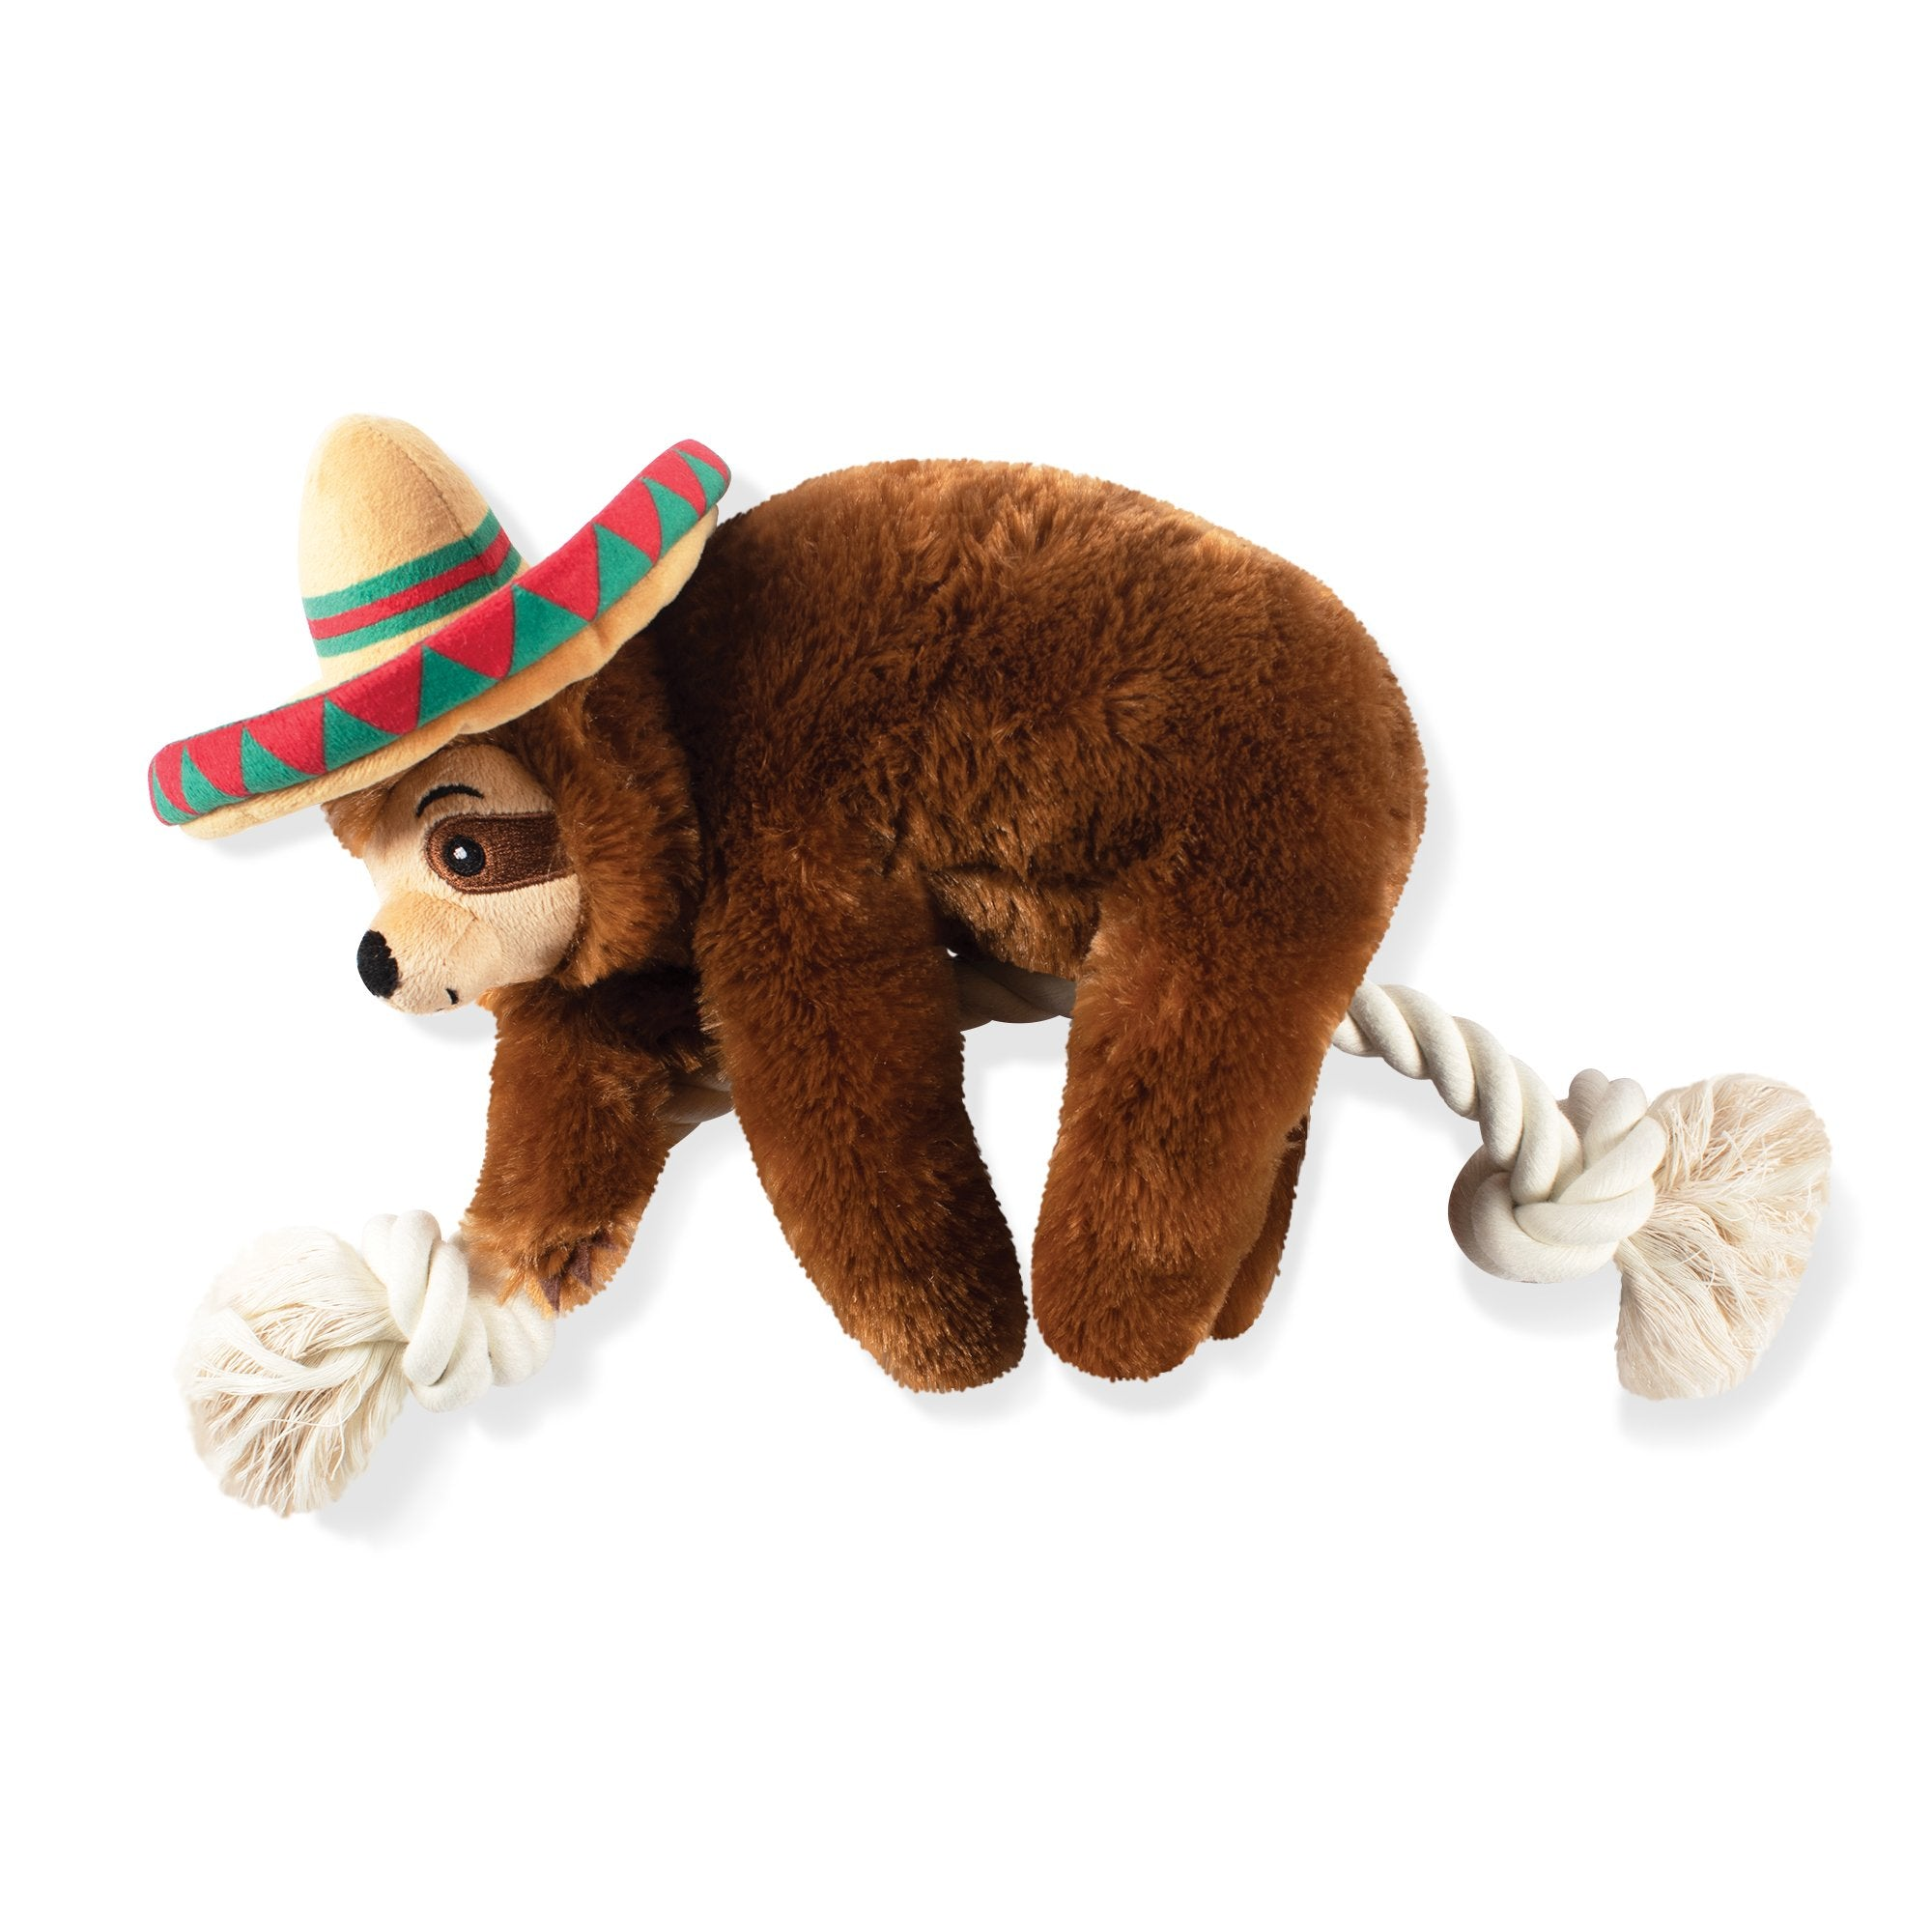 Sombrero Sloth On A Rope Dog Toy